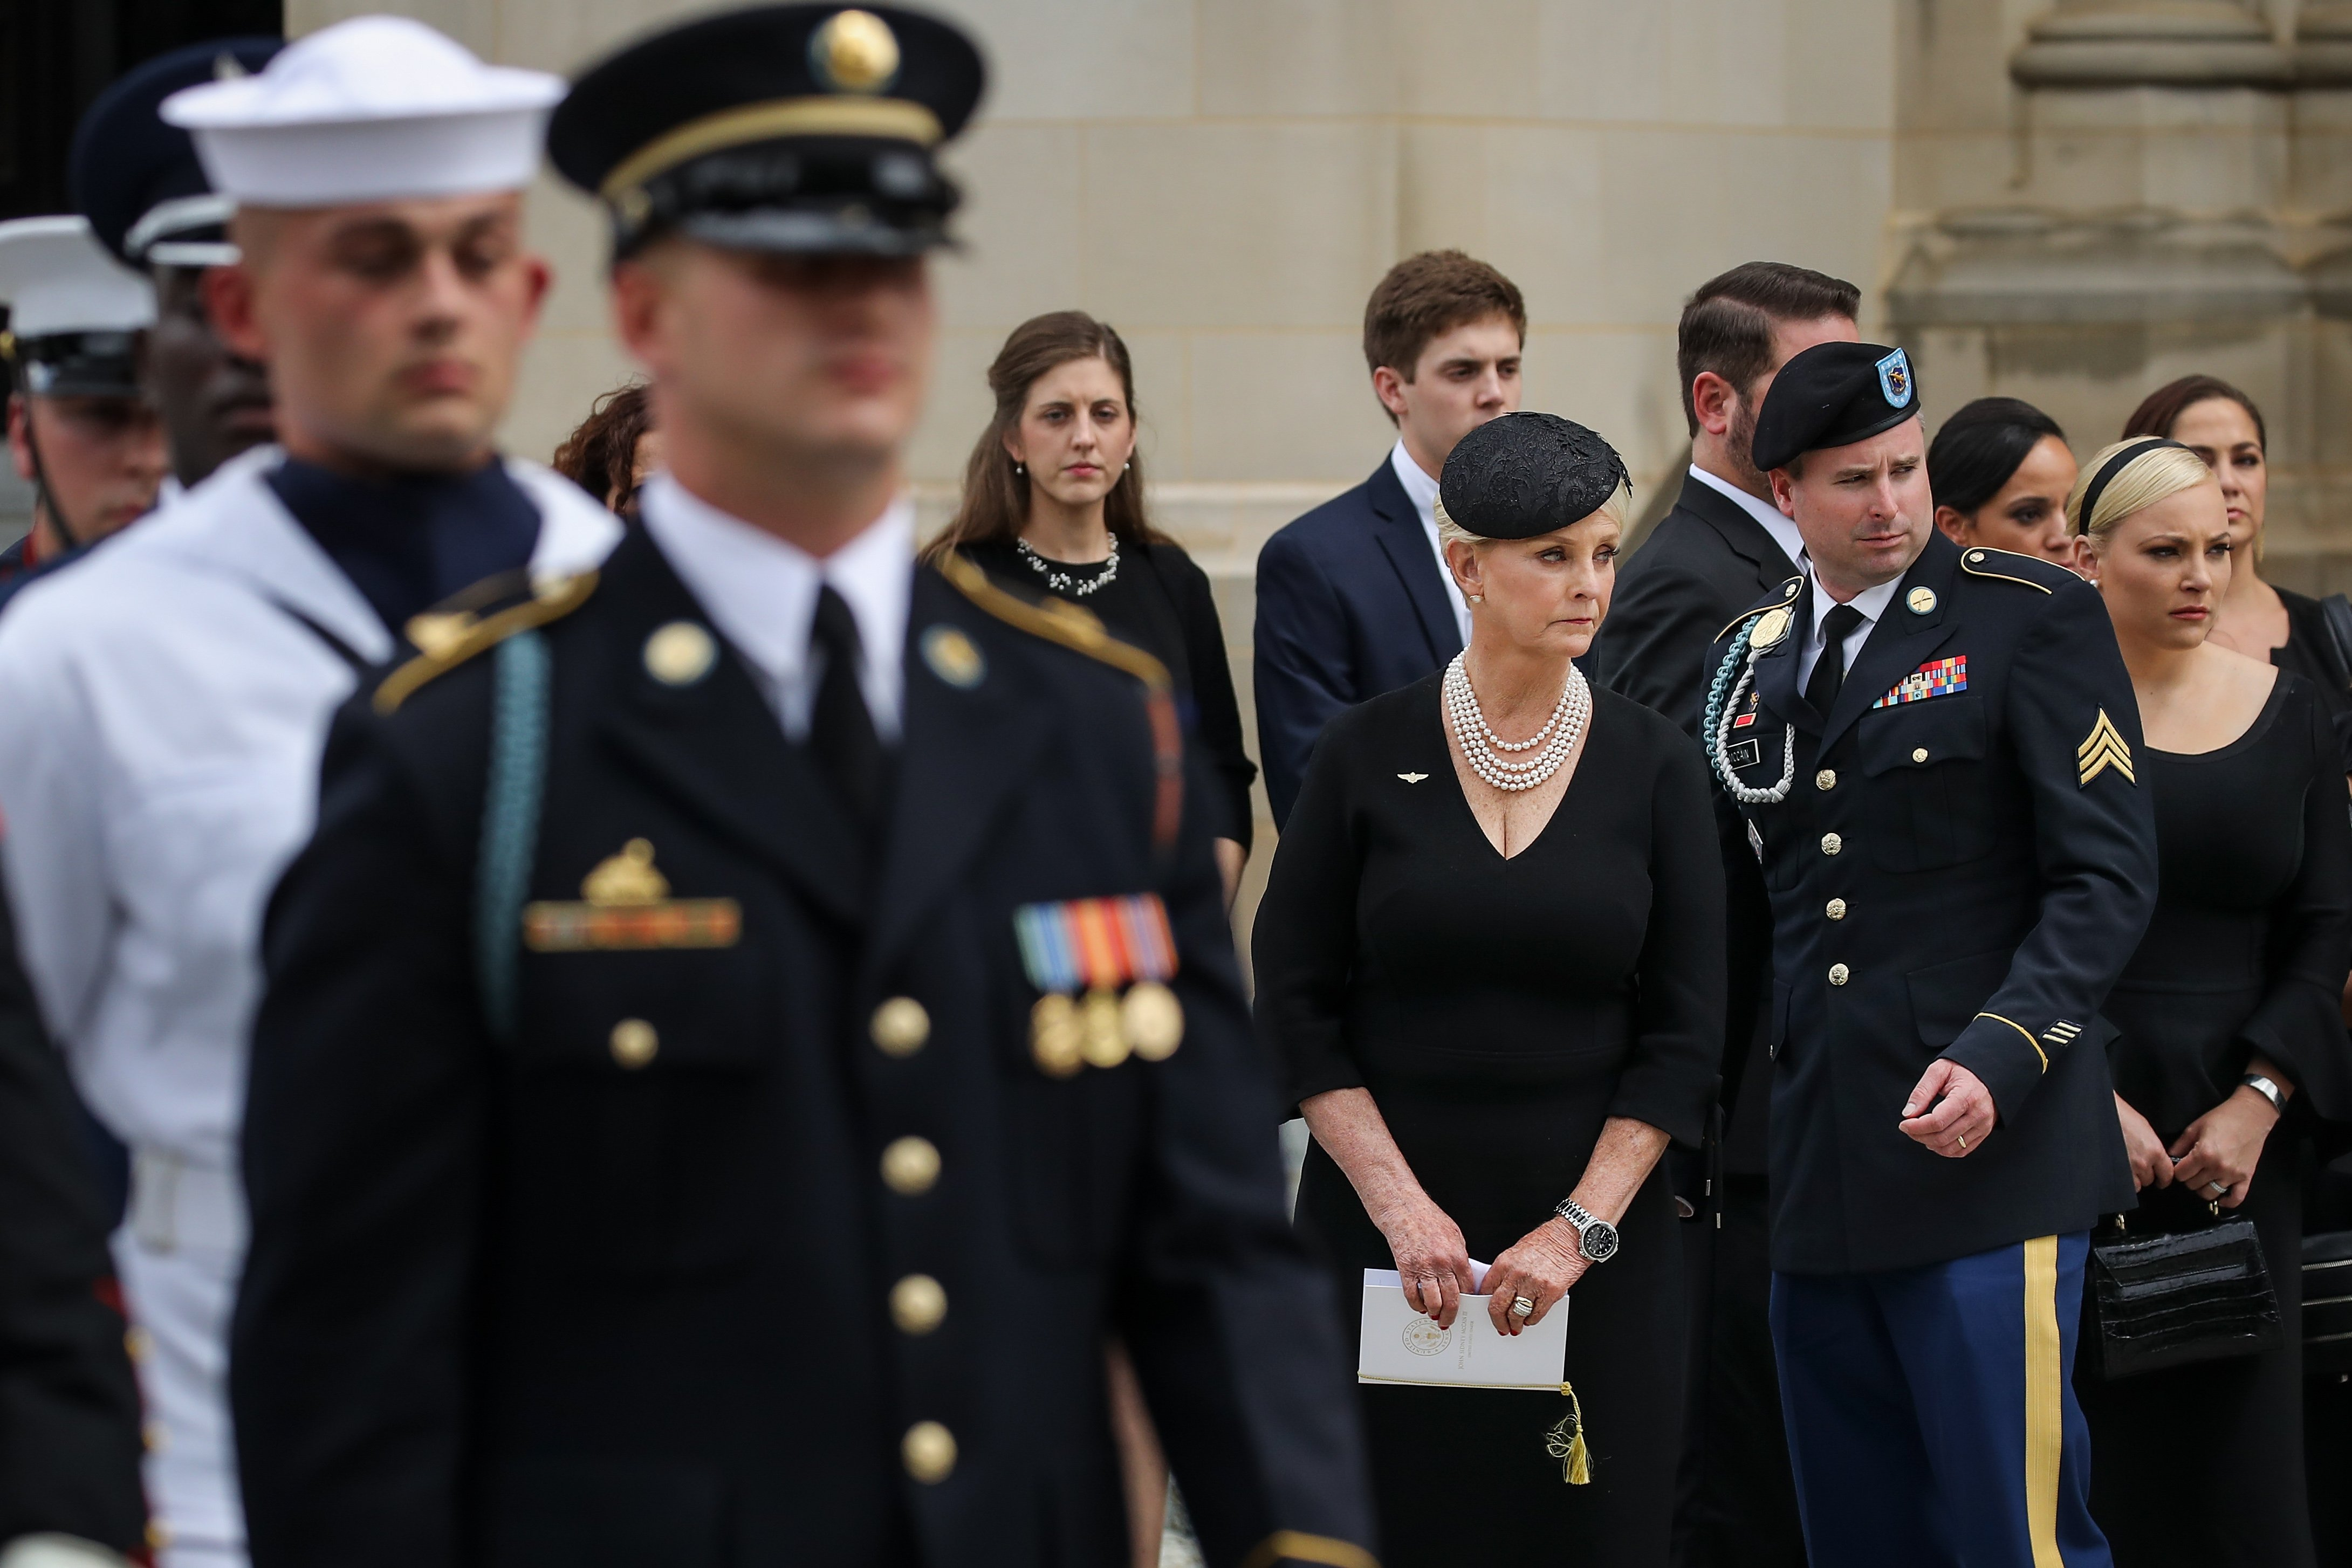 Cindy, James, and Meghan McCain look on as the casket of the late Senator John McCain is loaded into a Hearse at the Washington National Cathedral, September 1, 2018 in Washington, DC | Photo: Getty Images